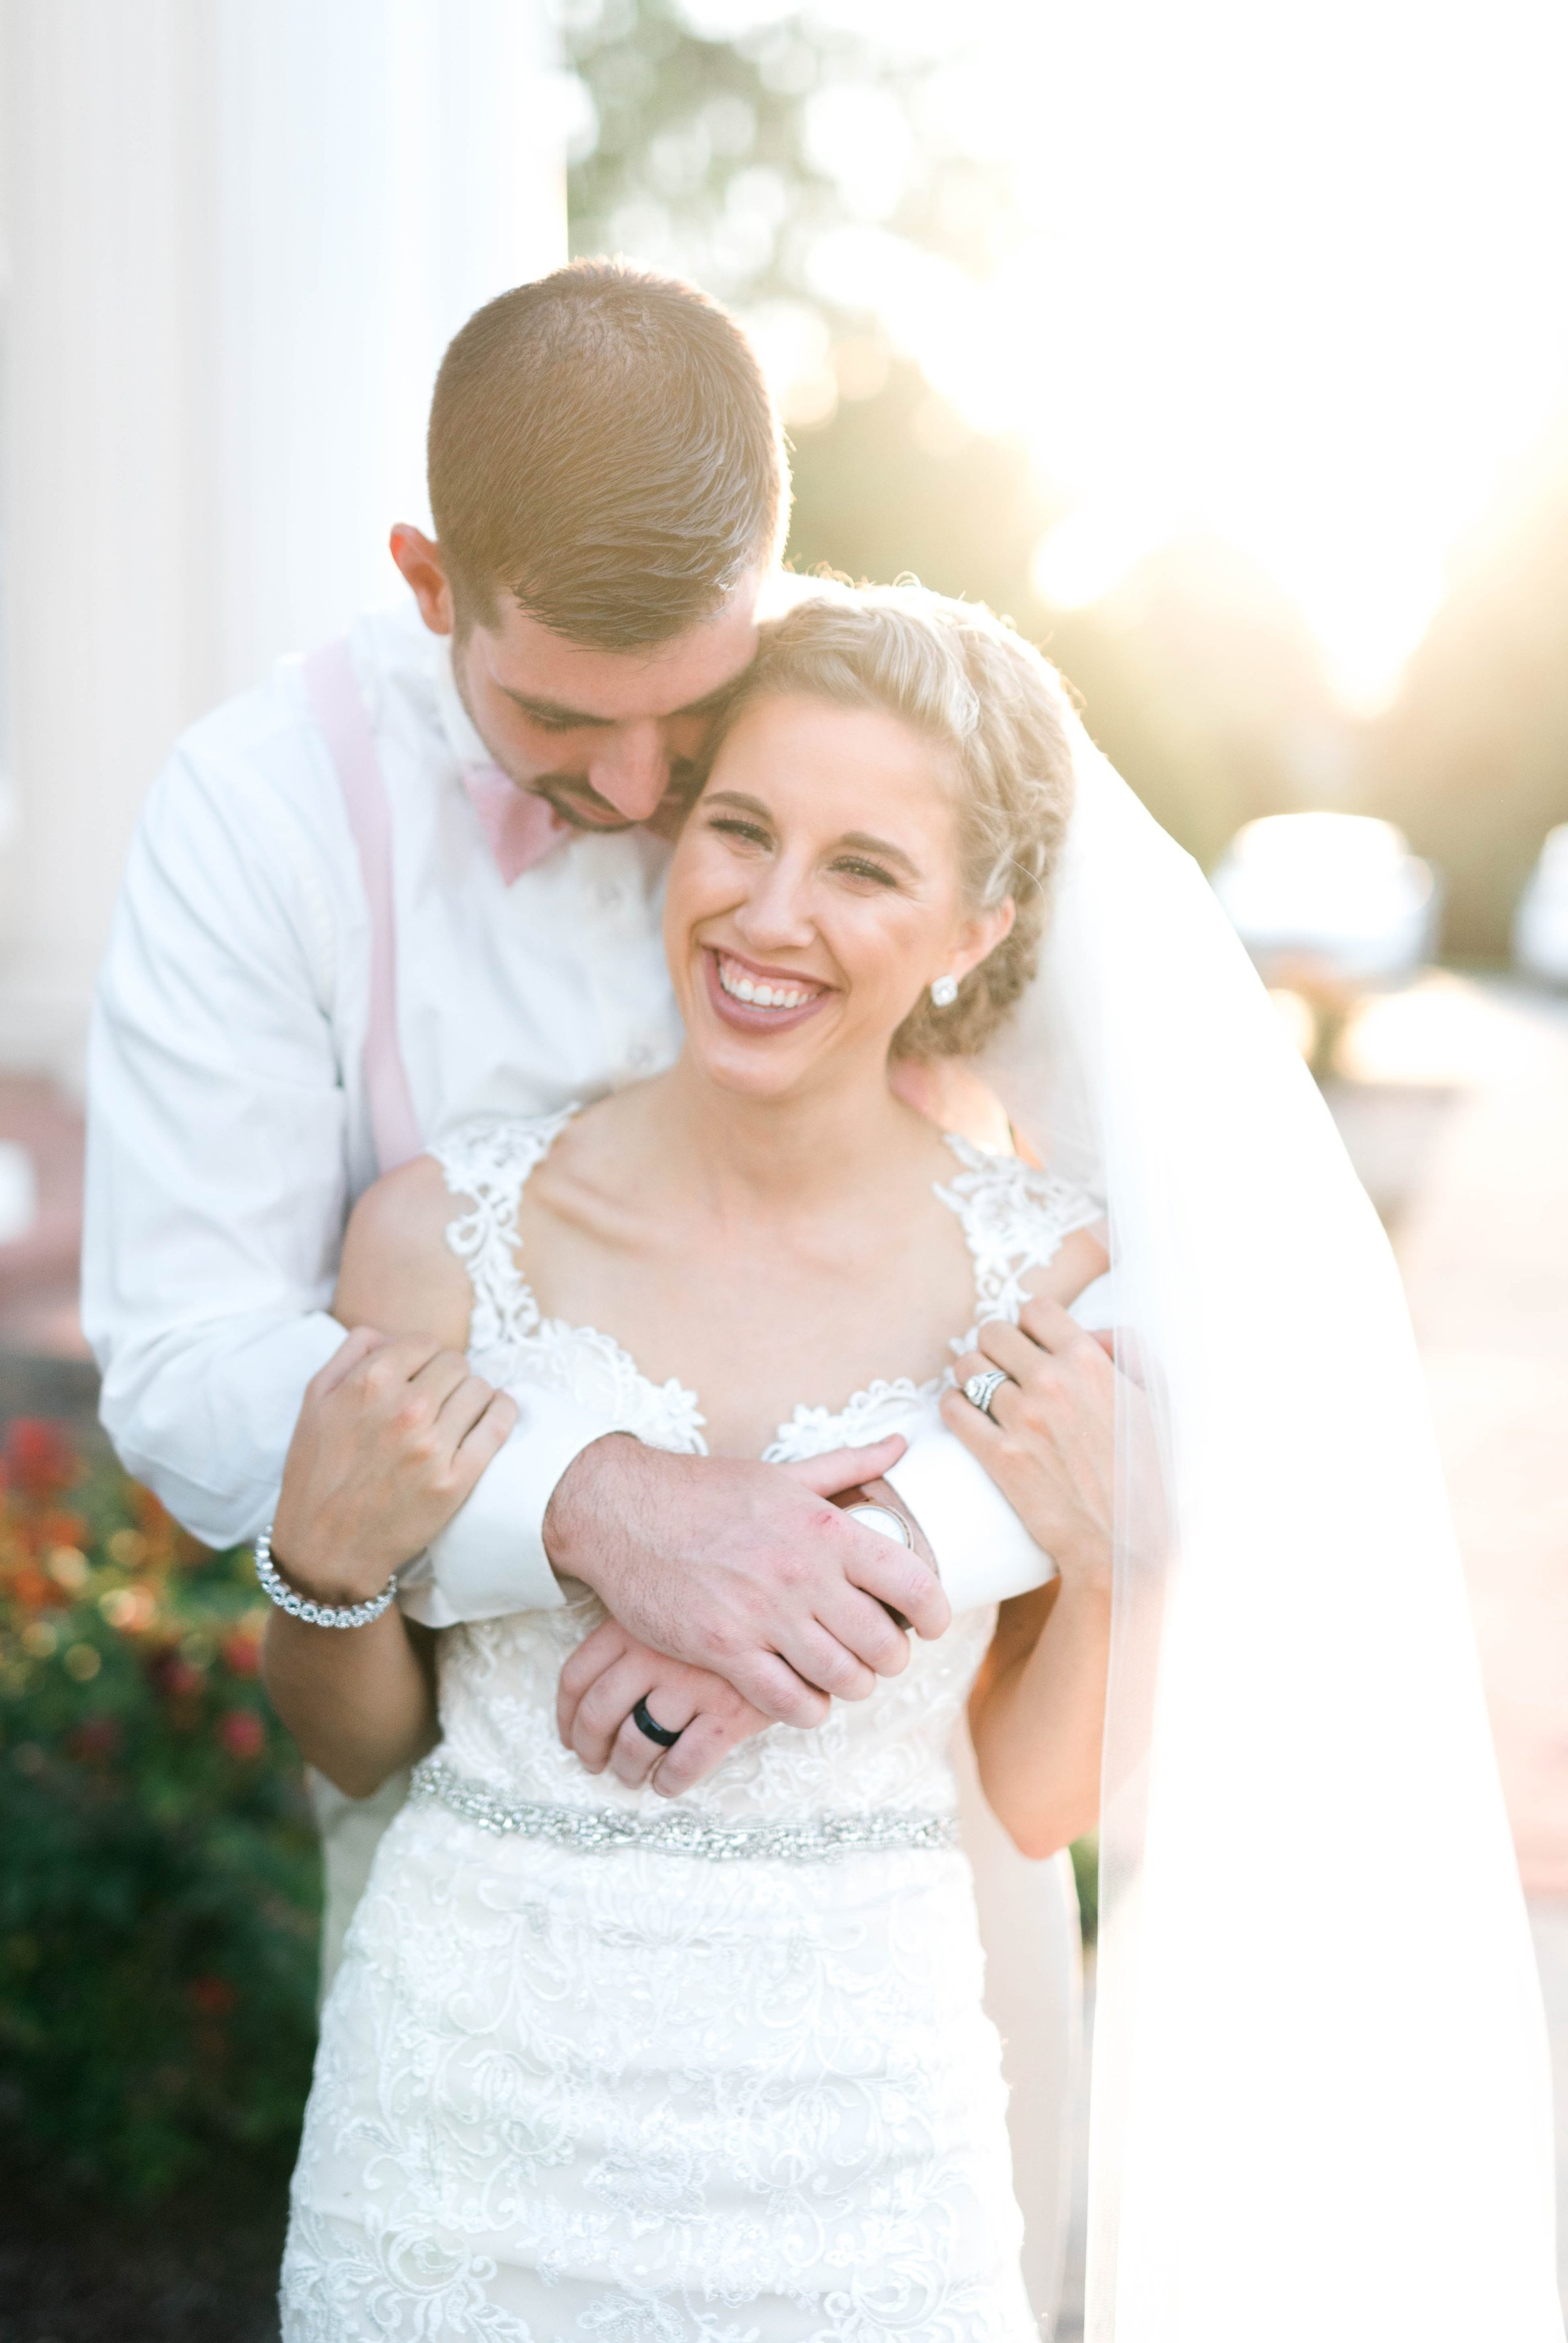 BedfordColumns_EntwinedEvents_Lynchburgwedding_VIrginiaweddingphotographer_ALlisonNIck 23.jpg